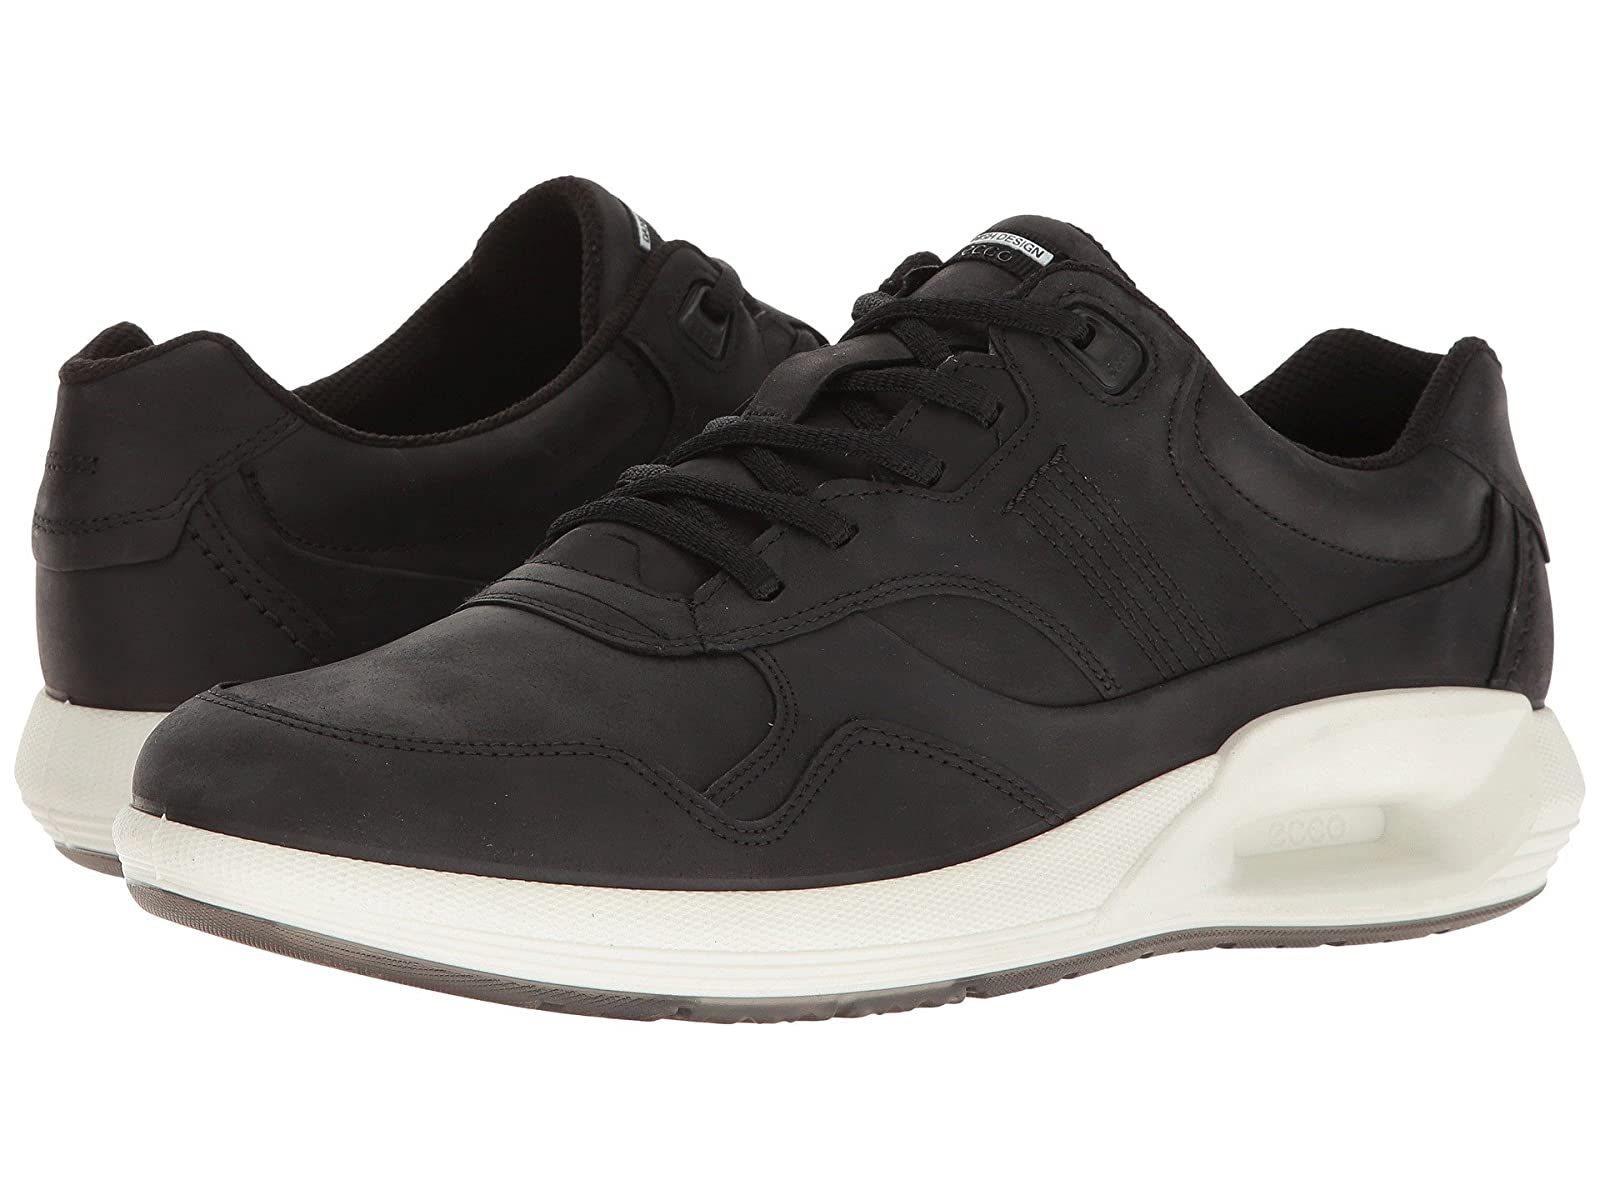 ECCO CS16 LowCheap and distinctive eye-catching shoes